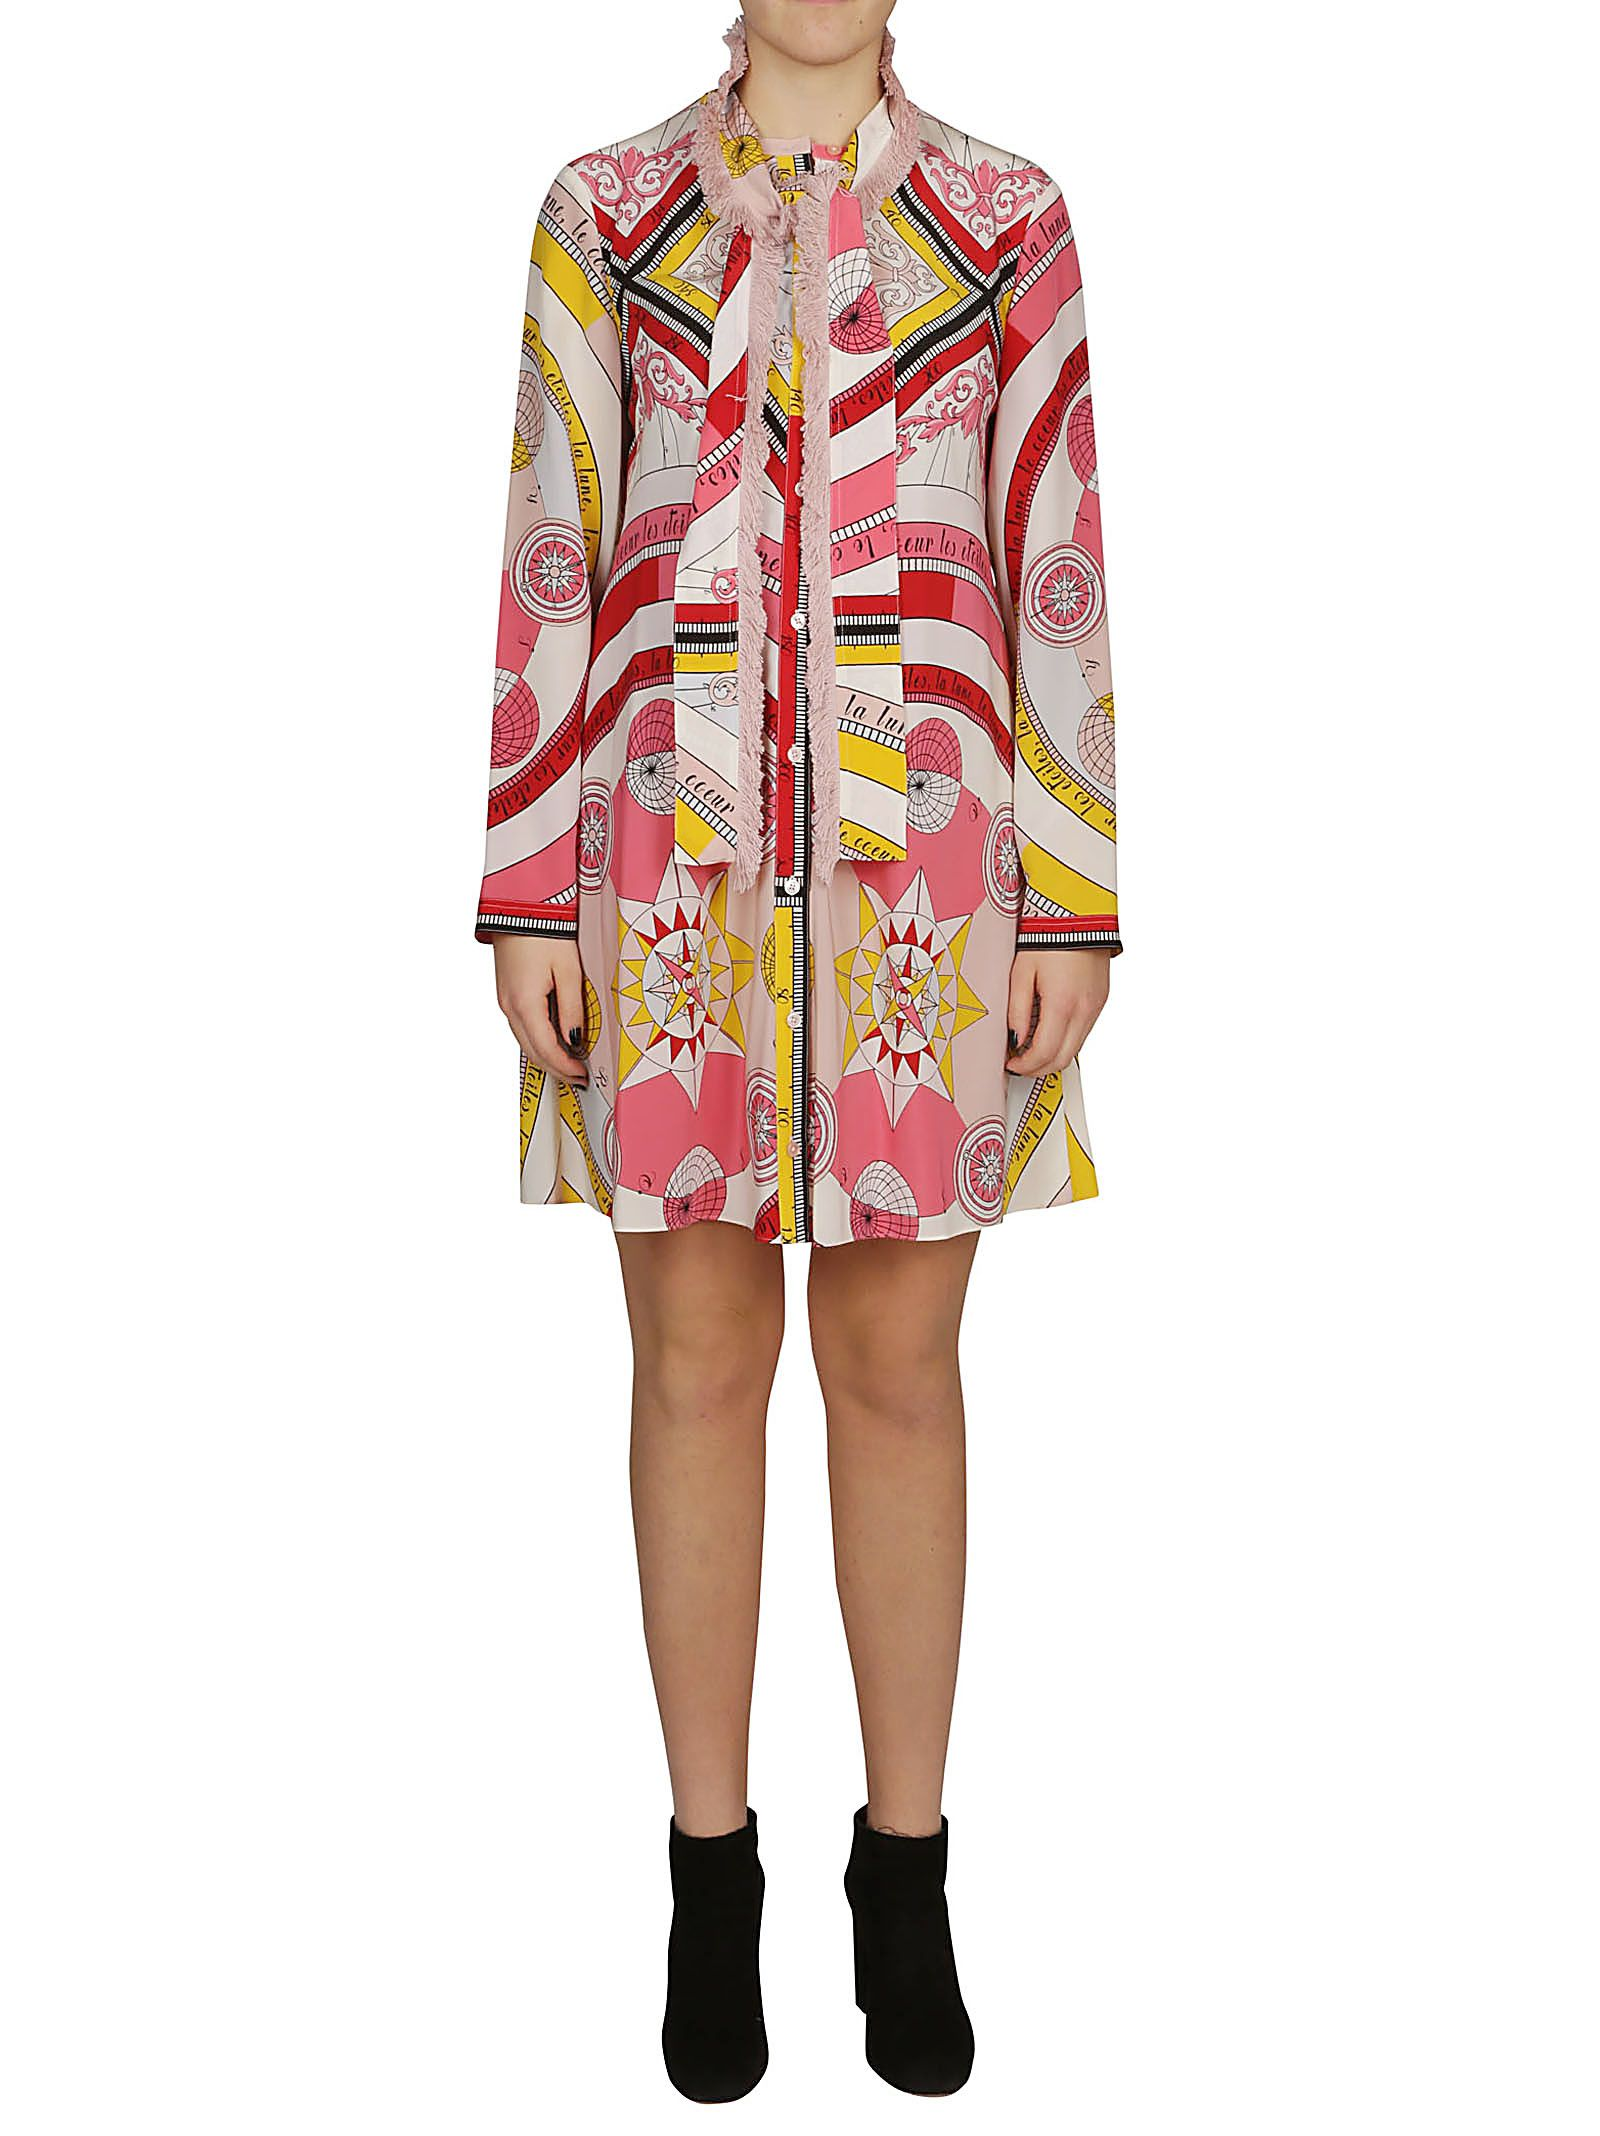 96d4b2d6354 Tory Burch Tory Burch Printed Shirt Dress - Fantasia - 10788309 ...